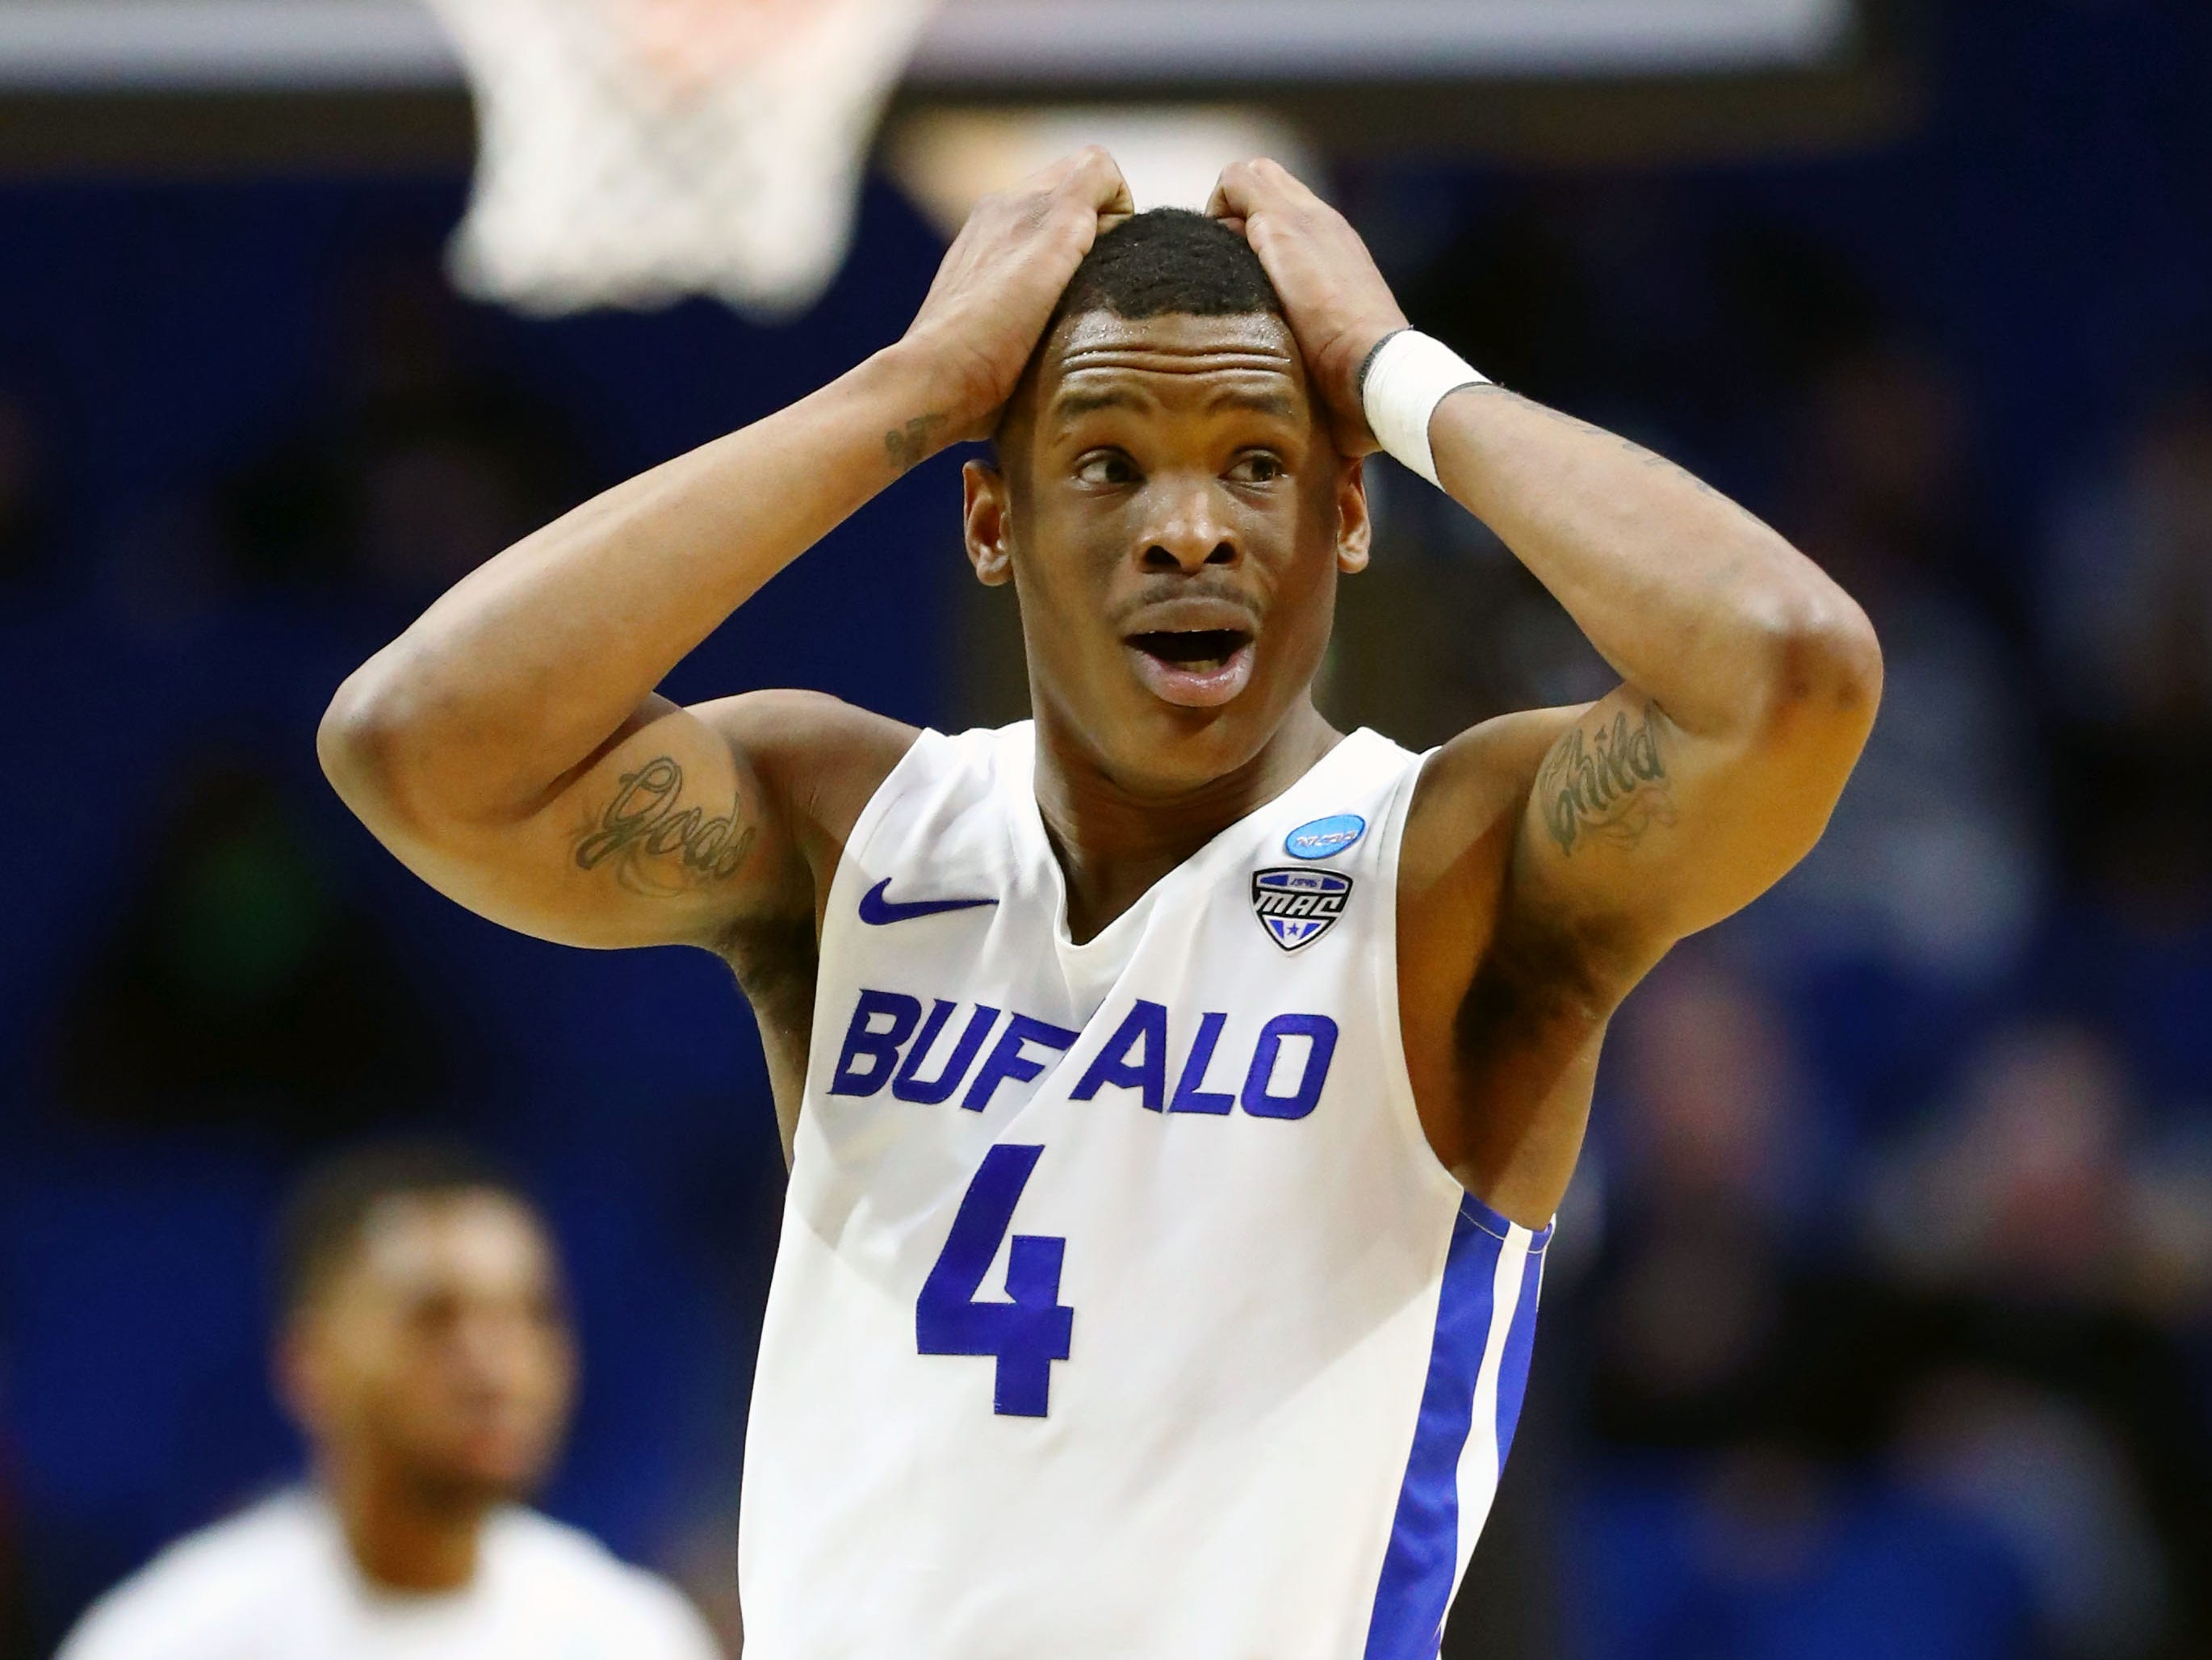 Mar 22, 2019; Tulsa, OK, USA; Buffalo Bulls guard Davonta Jordan (4) reacts after a play against the Arizona State Sun Devils during the second half in the first round of the 2019 NCAA Tournament at BOK Center. Mandatory Credit: Mark J. Rebilas-USA TODAY Sports